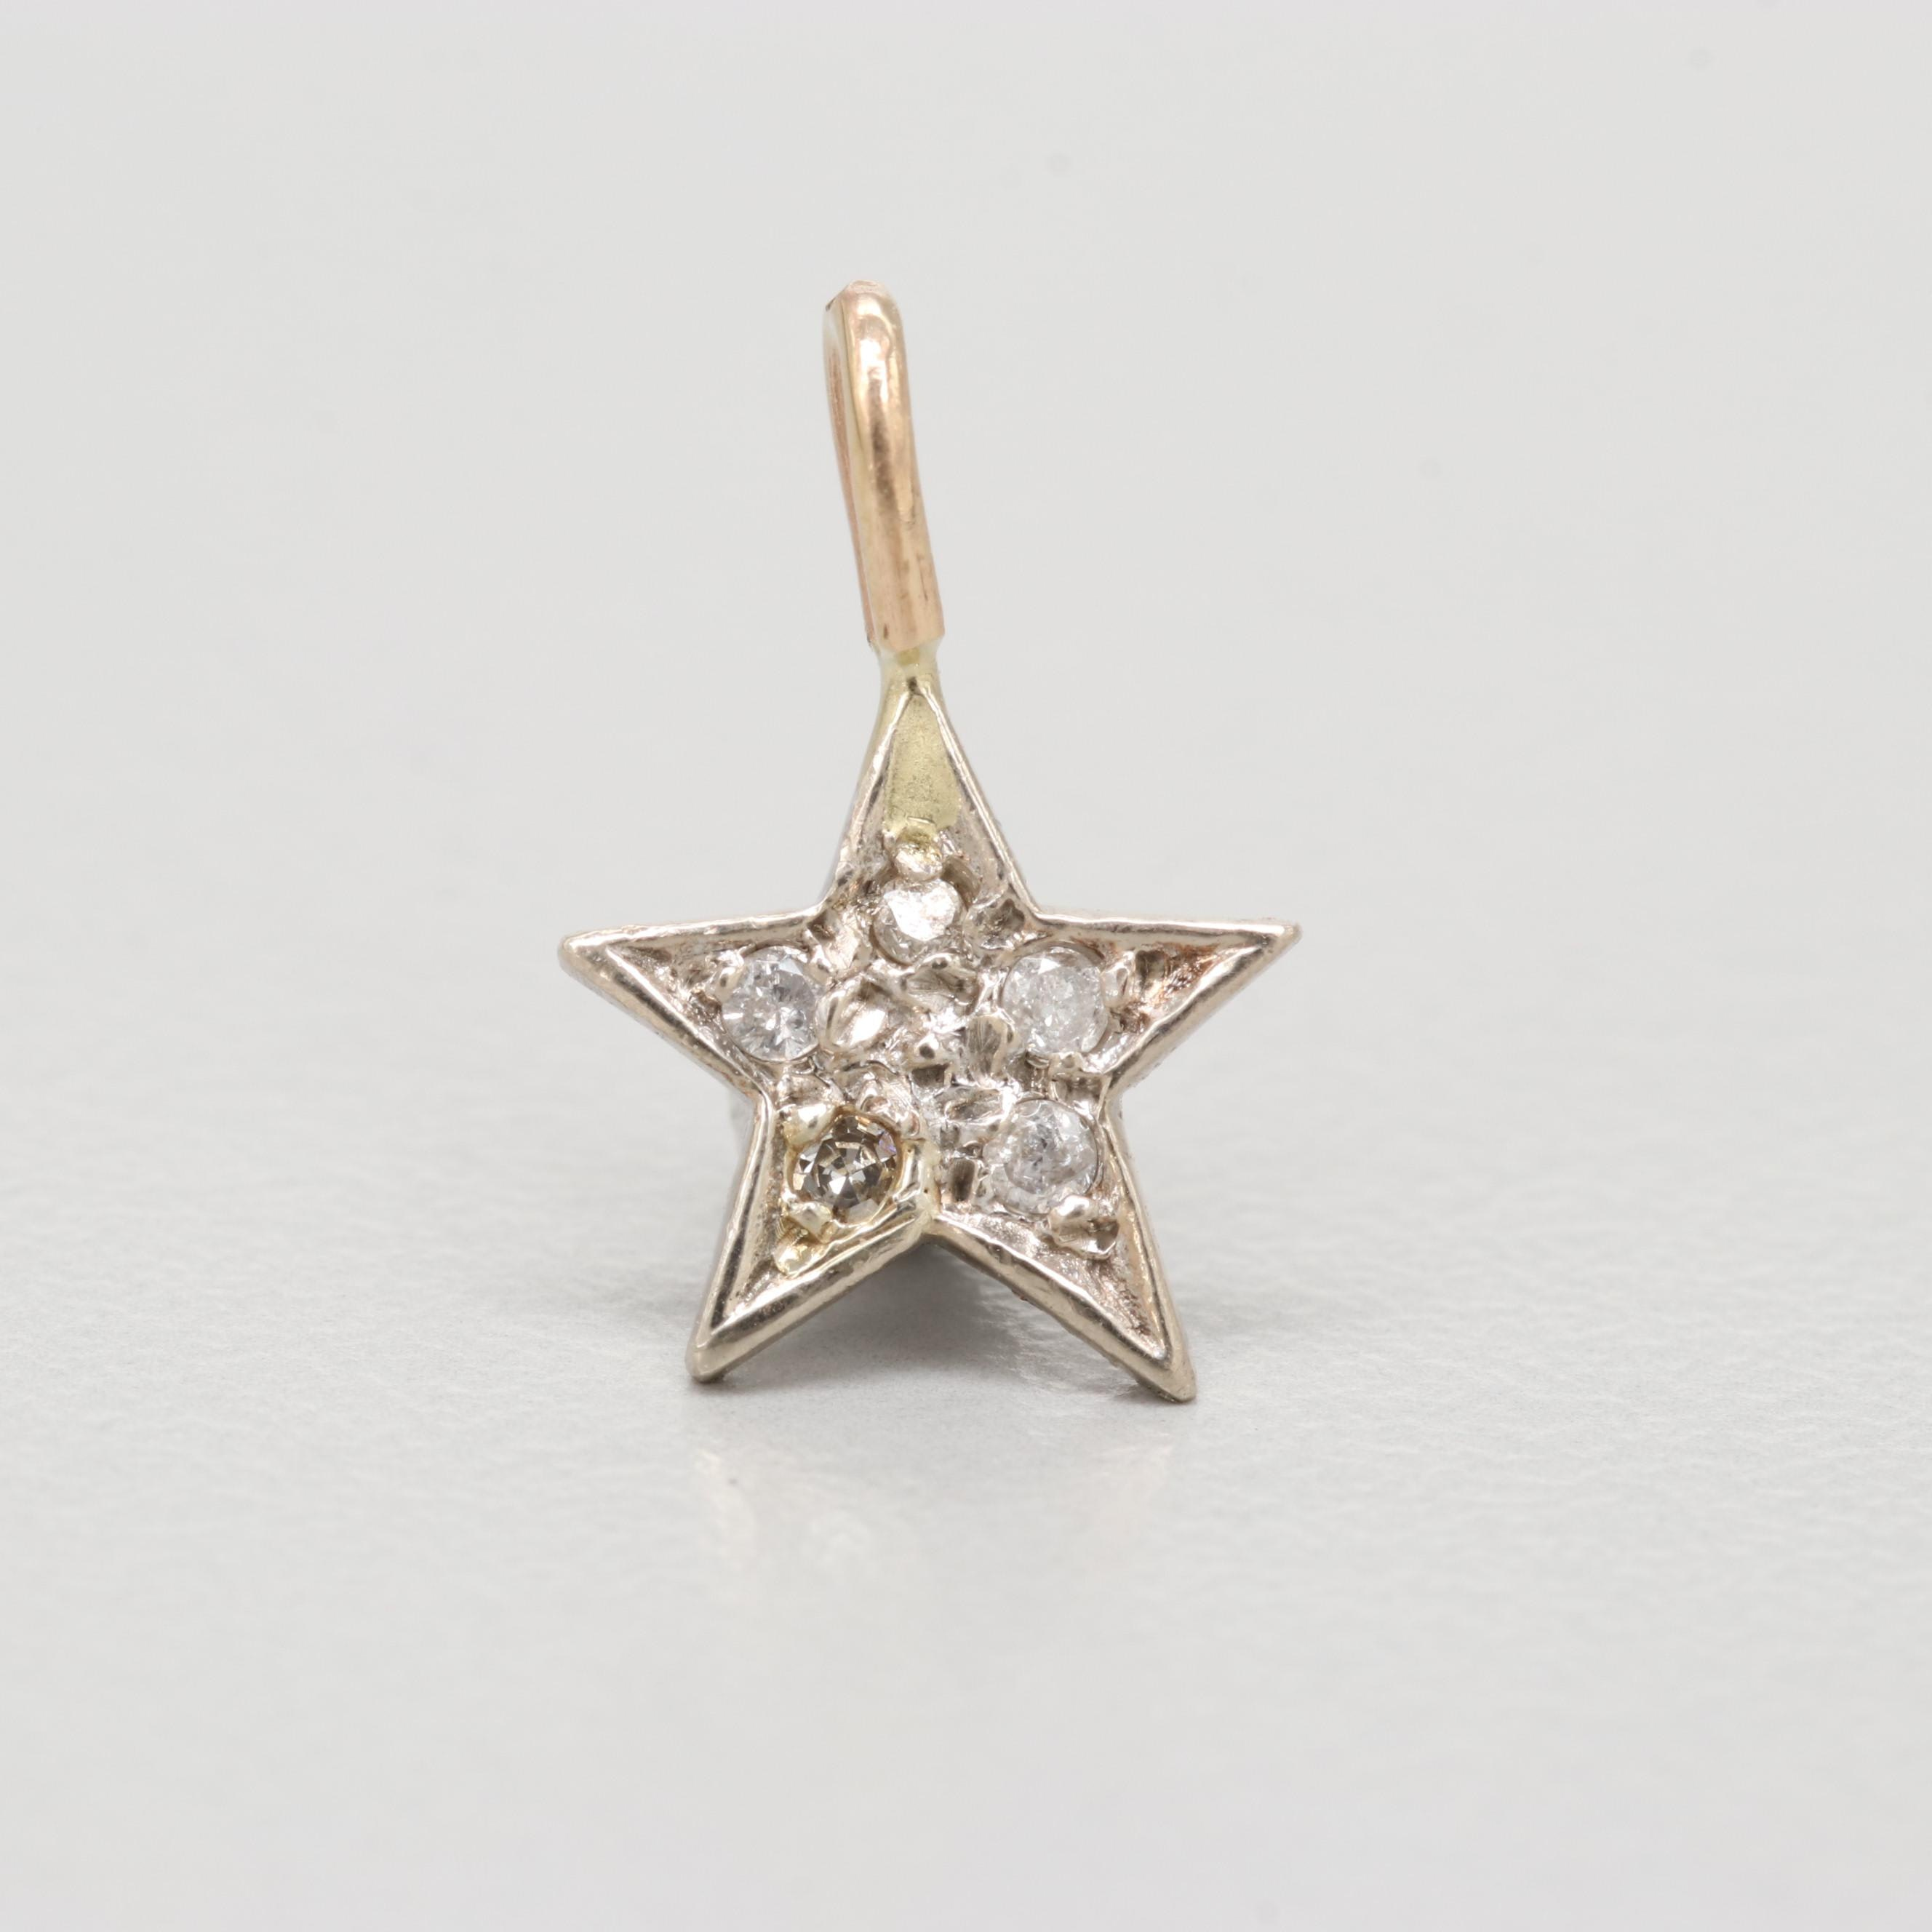 10K White and Yellow Gold Diamond Star Pendant